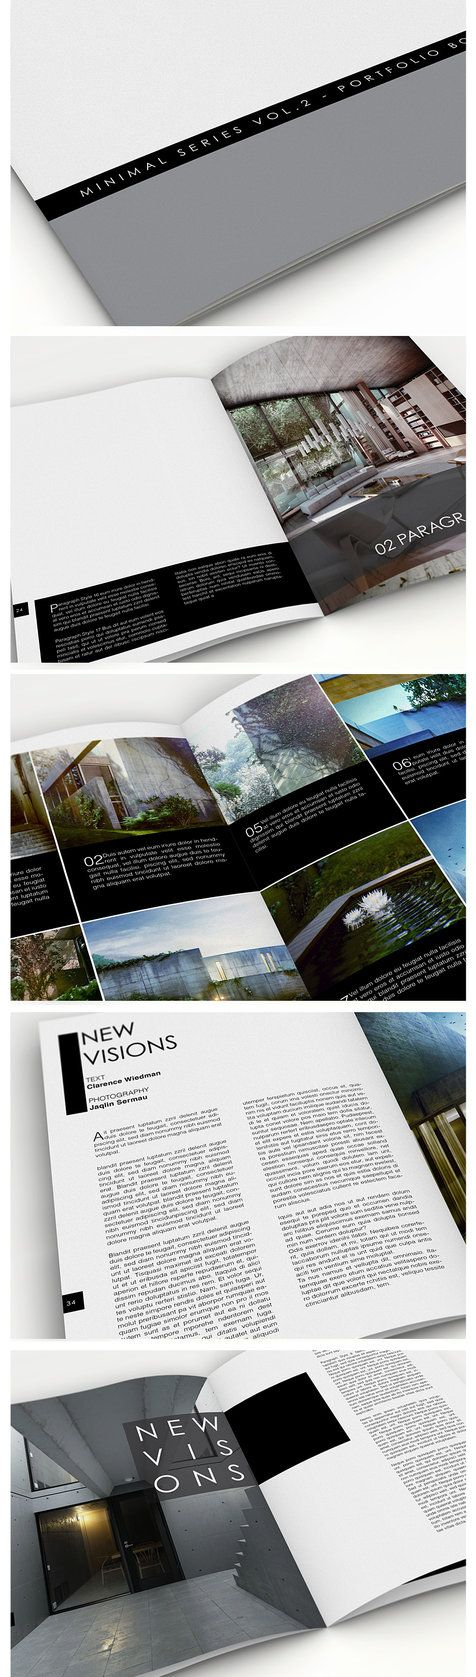 Portfolio book vol 2 a4 indesign template by anderworks for Indesign templates for books